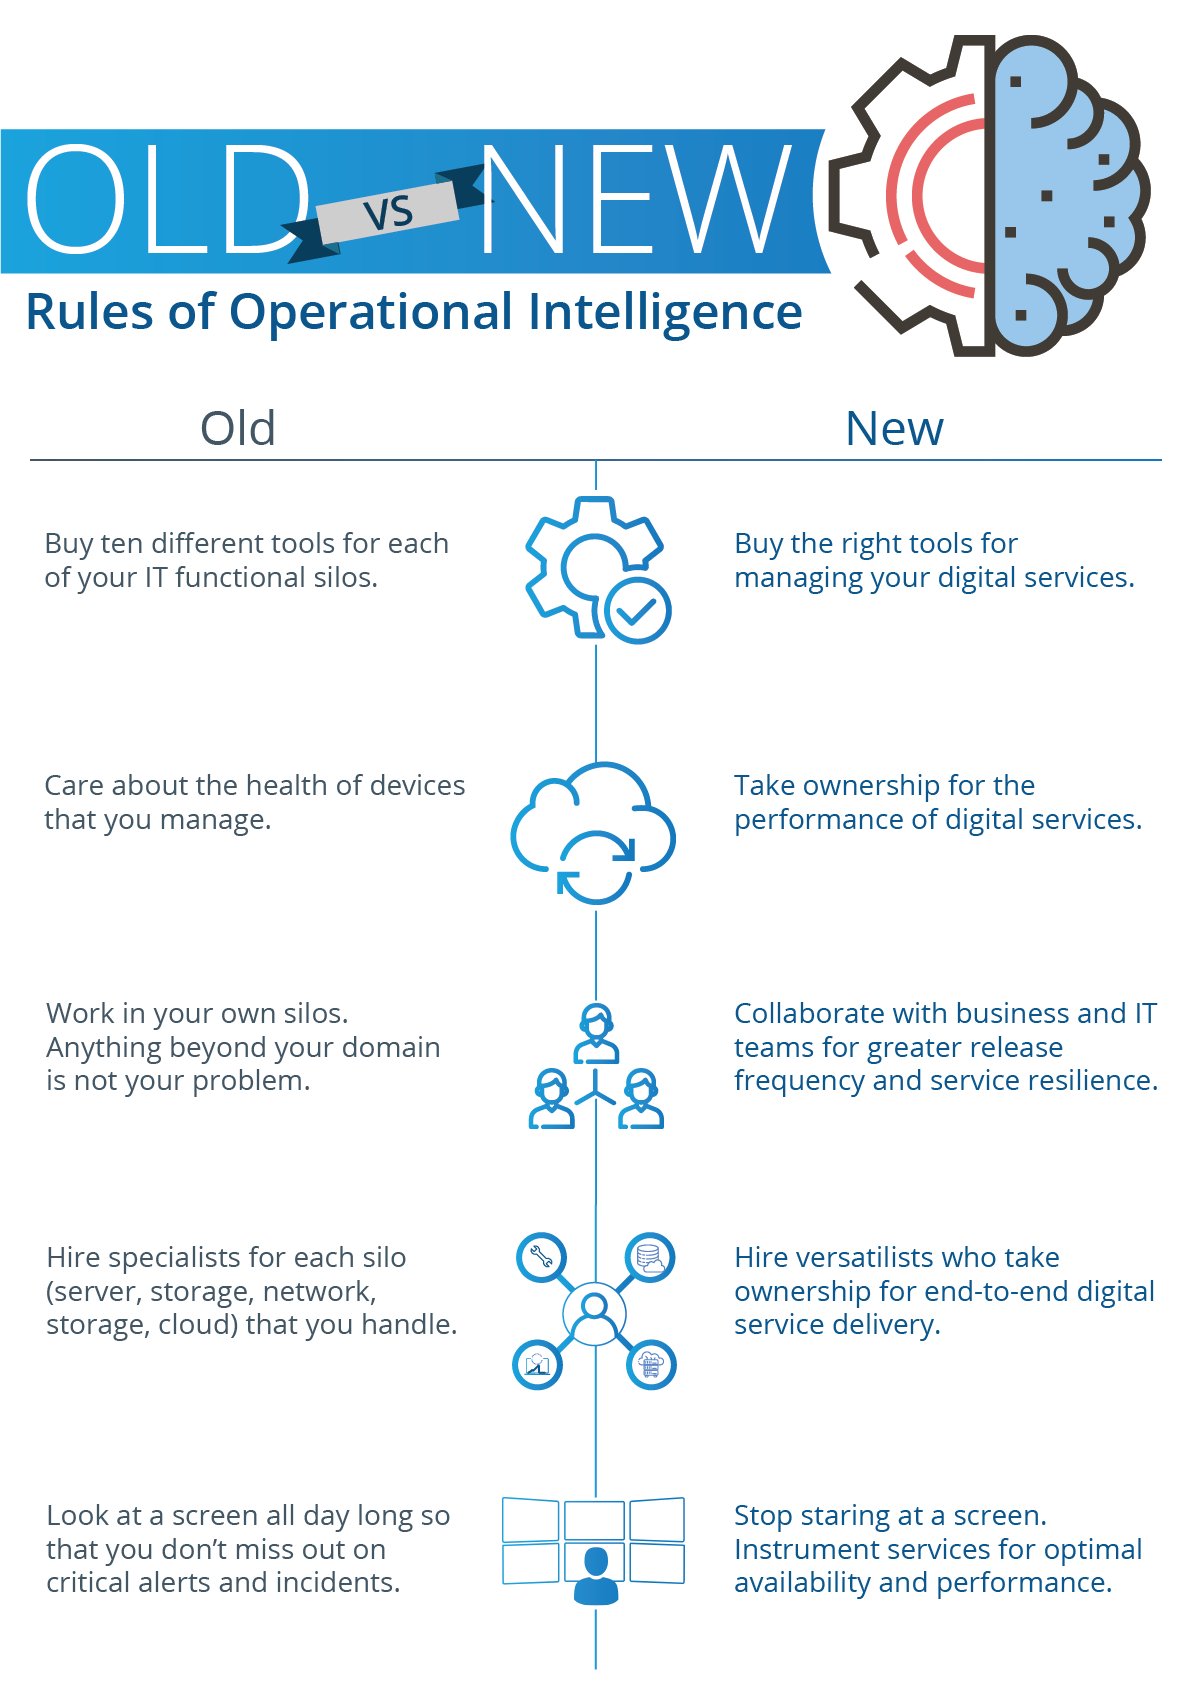 Rules-of-Operational-Intelligence.png